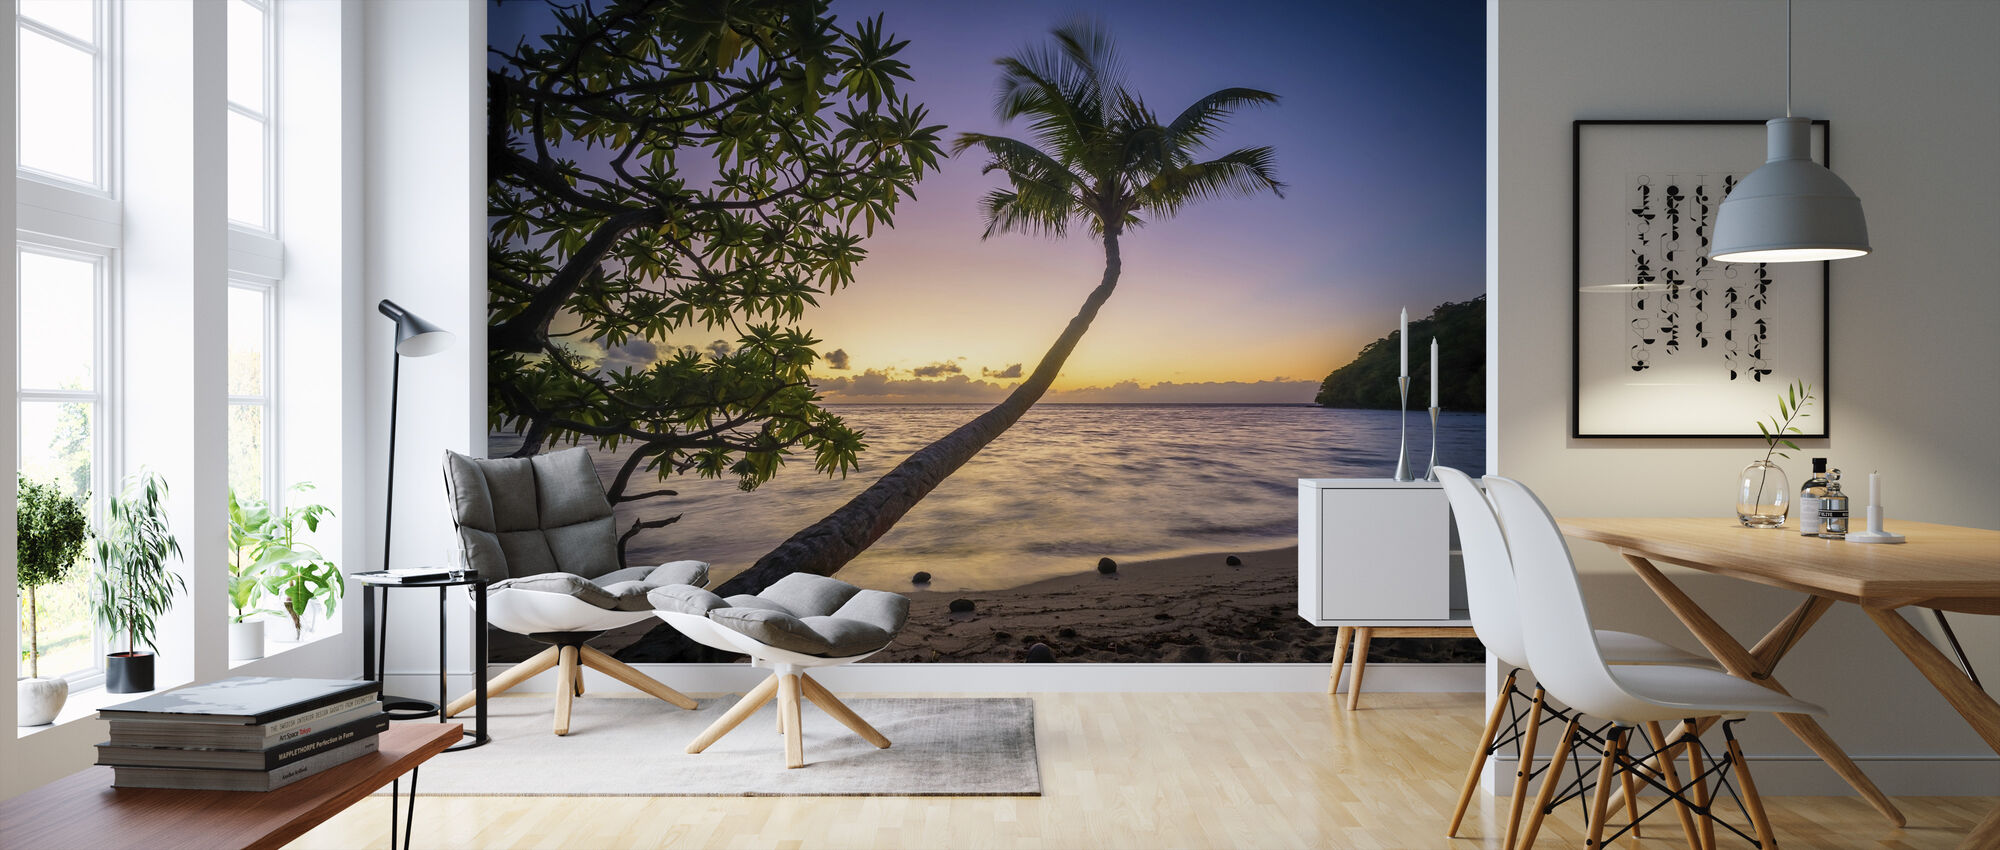 Sunset Beach - Wallpaper - Living Room